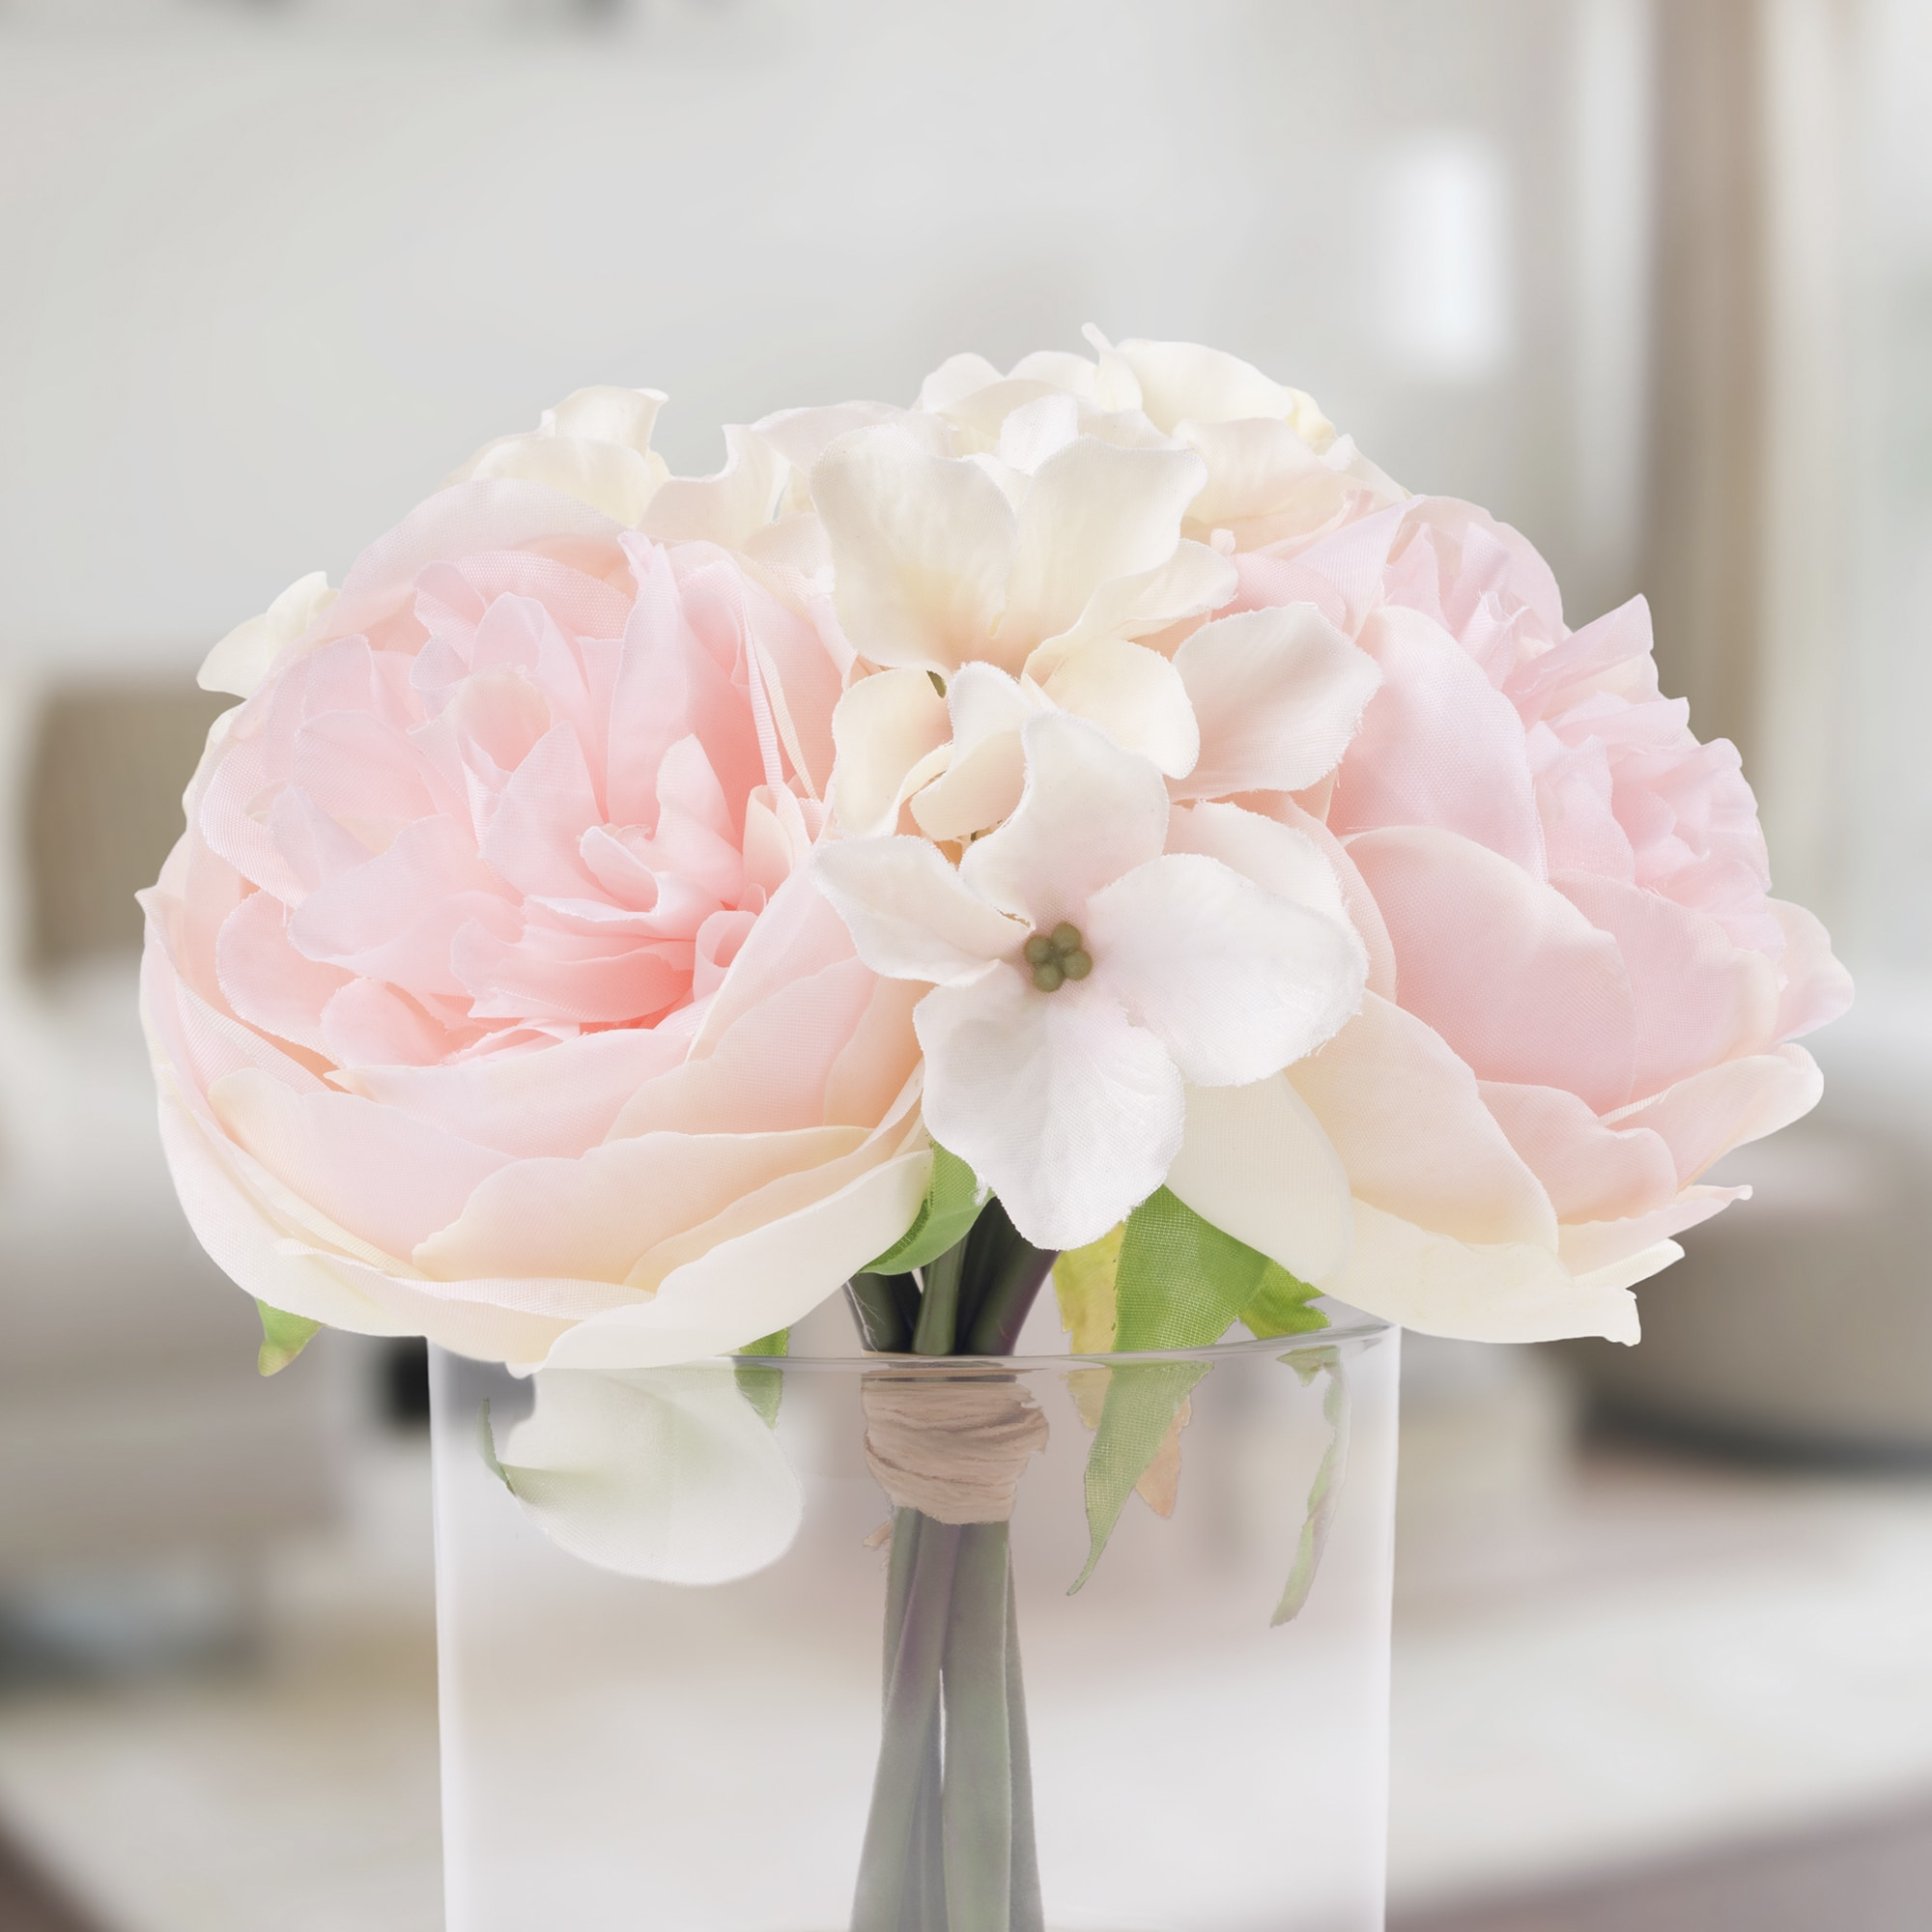 Shop Pure Garden Hydrangea And Rose Floral Arrangement Pink And